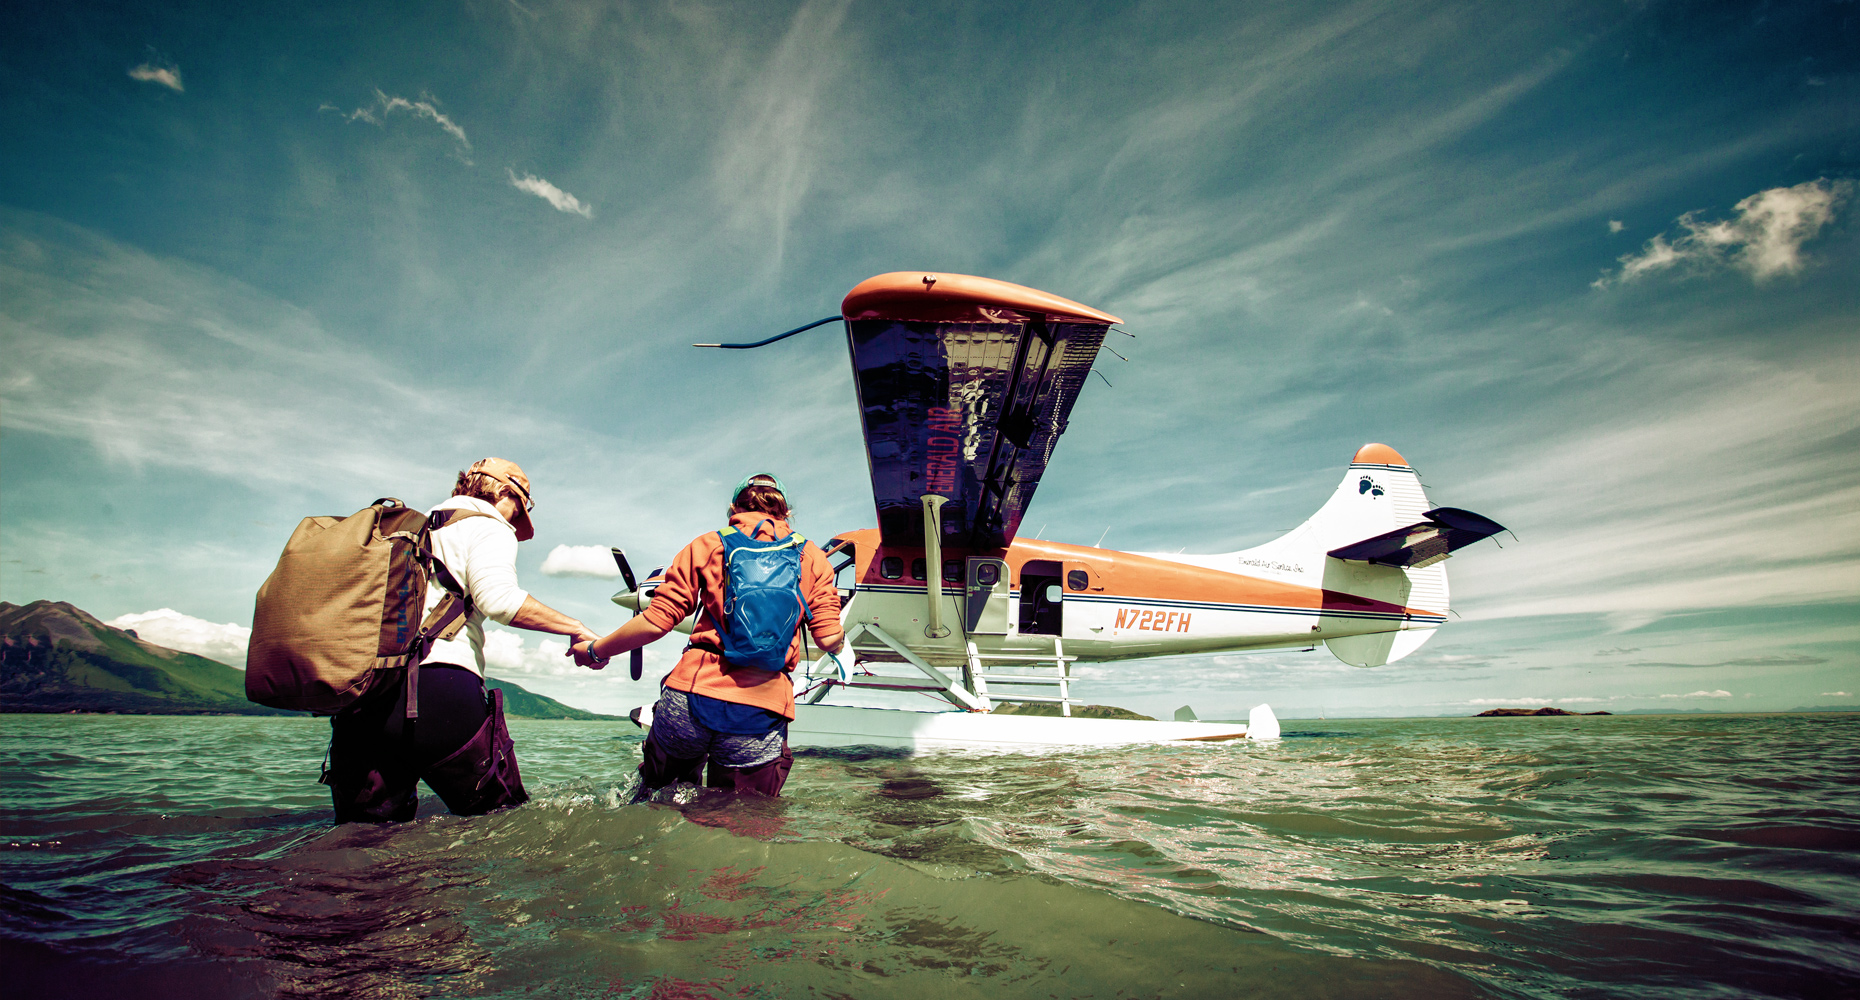 sea-plane-women-adventure